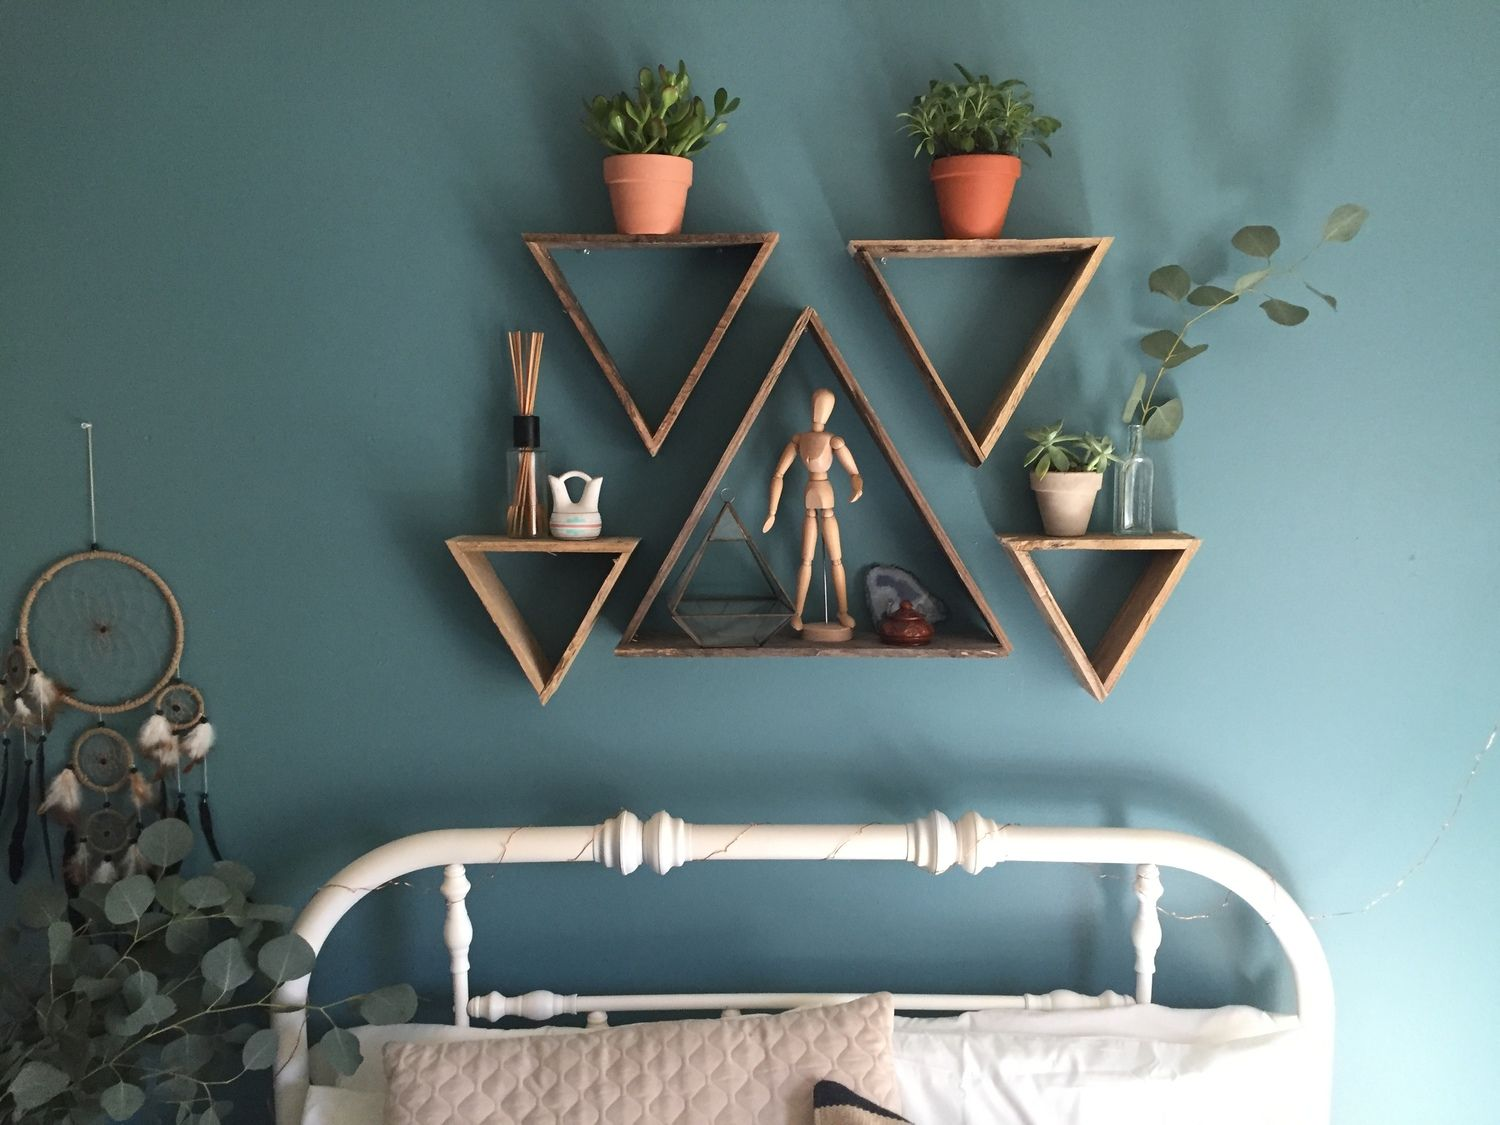 The shelves are totally unique and one of a kind as they are made from old wooden pallets! The photos are from my room and I LOVE the shelves above my bed! The possibilities are endless as these shelves work well alone or in a grouping. With multiple triangle shelves of various sizes you can create amazing, functional wall art.